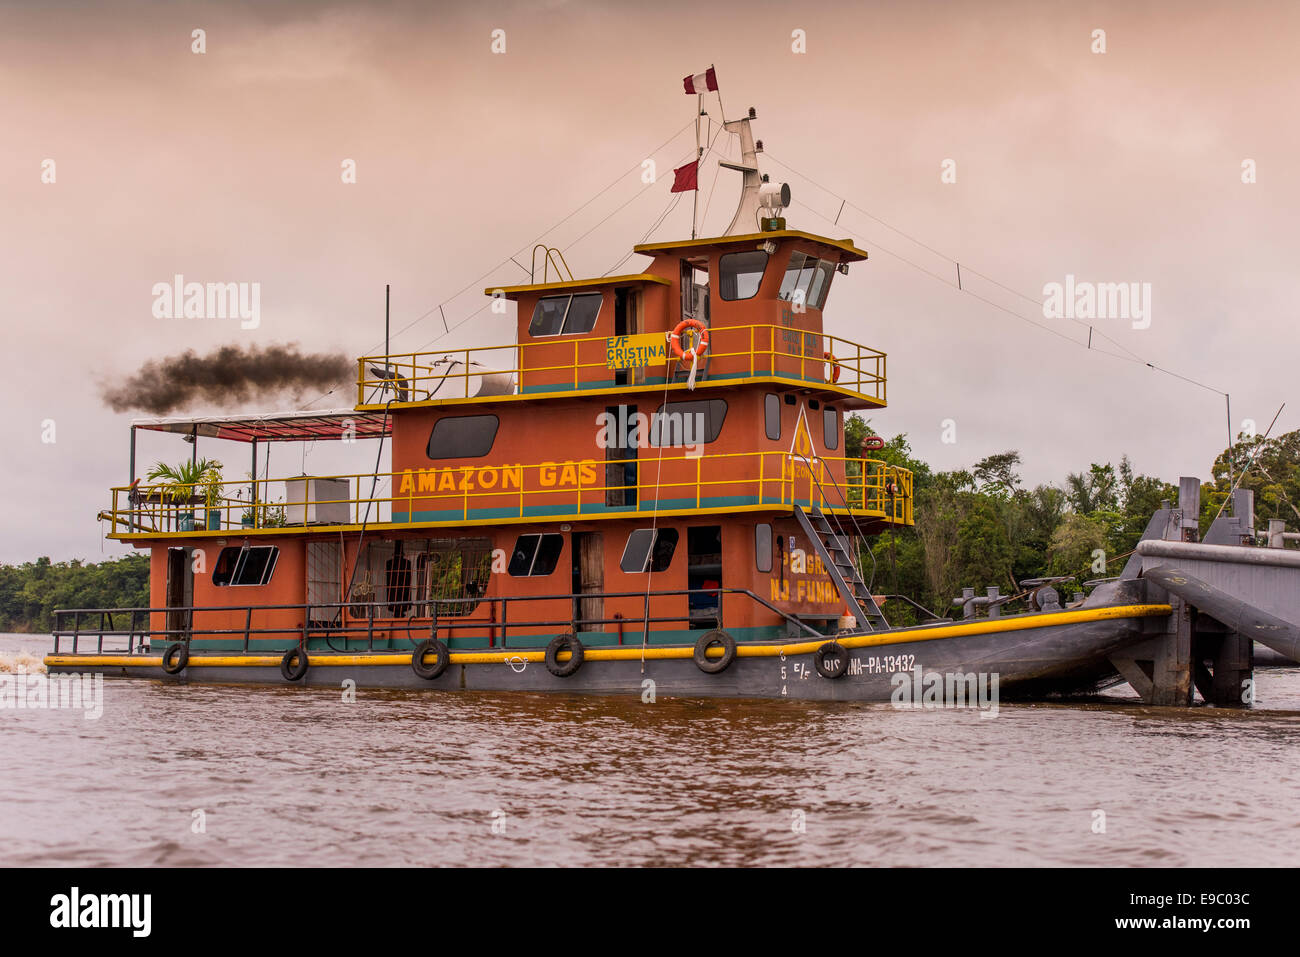 Amazon Gas Tug boat pushing a gas tanker on the Rio Nanay where it joins the Amazon - Stock Image